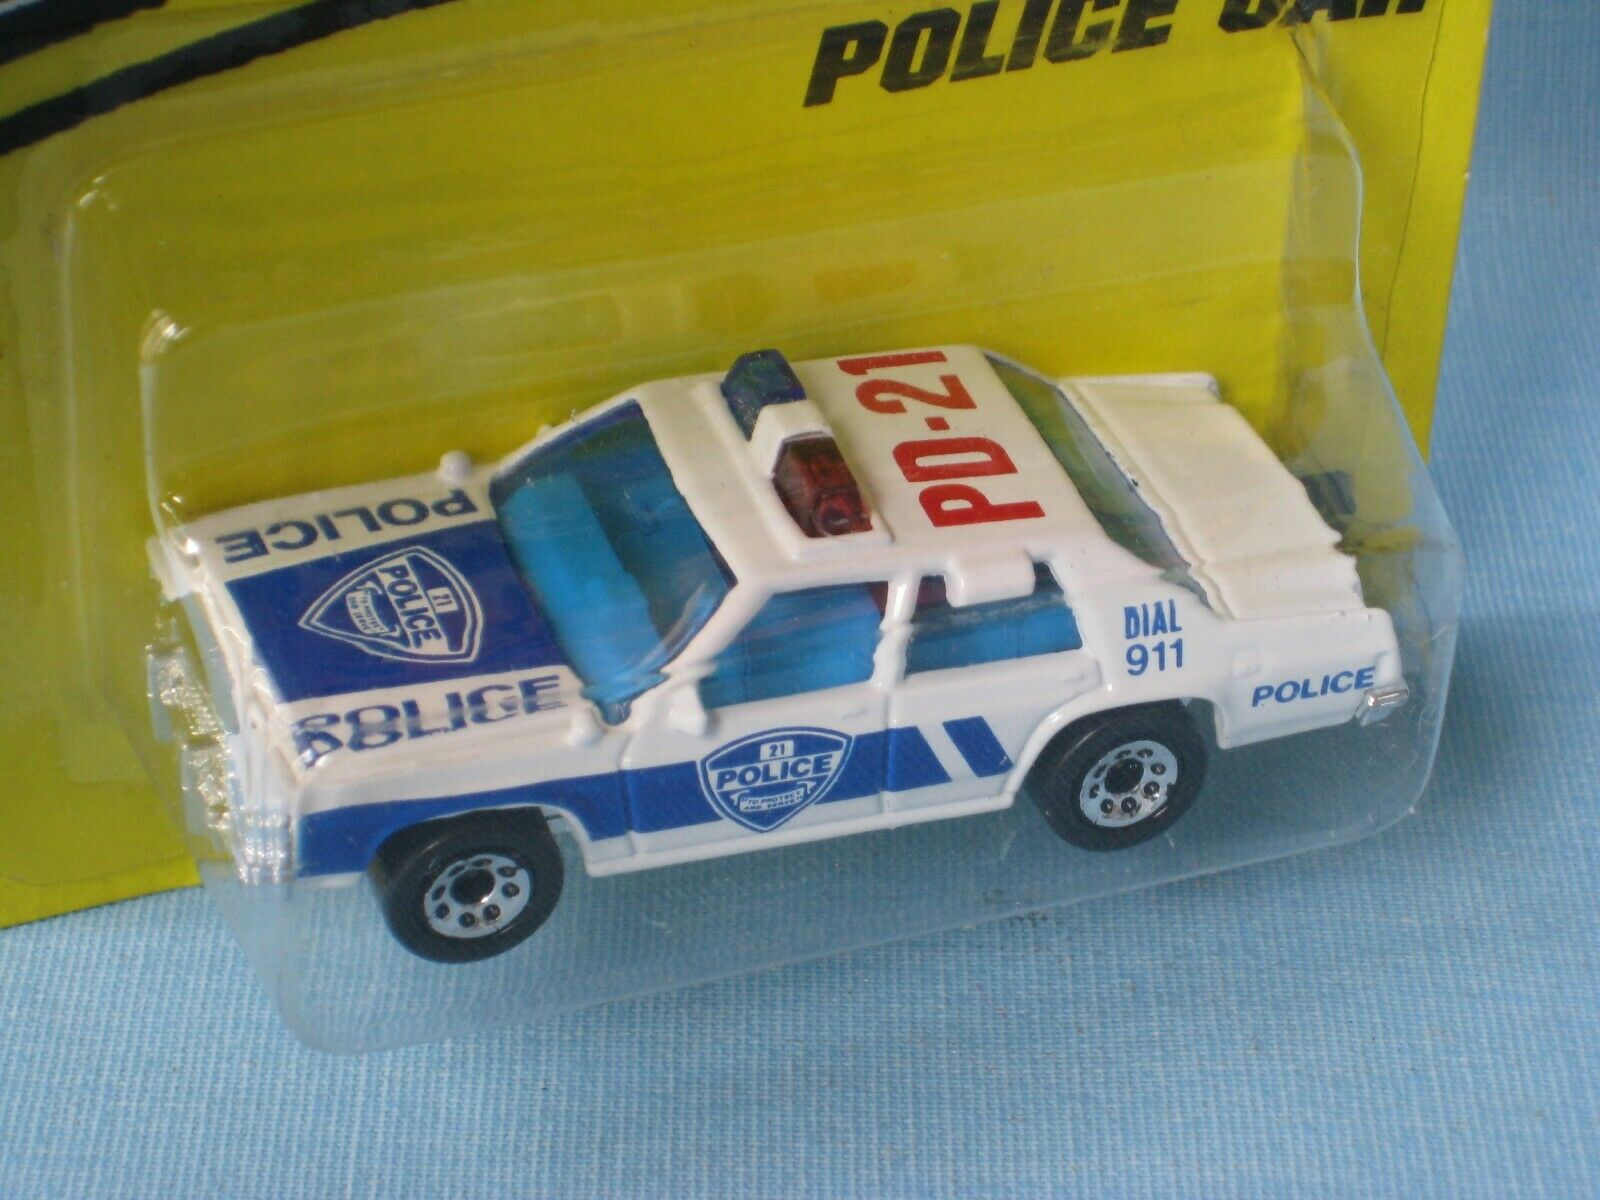 Matchbox Ford LTD State Police Car bluee Livery Toy Model Car 75mm Long in BP